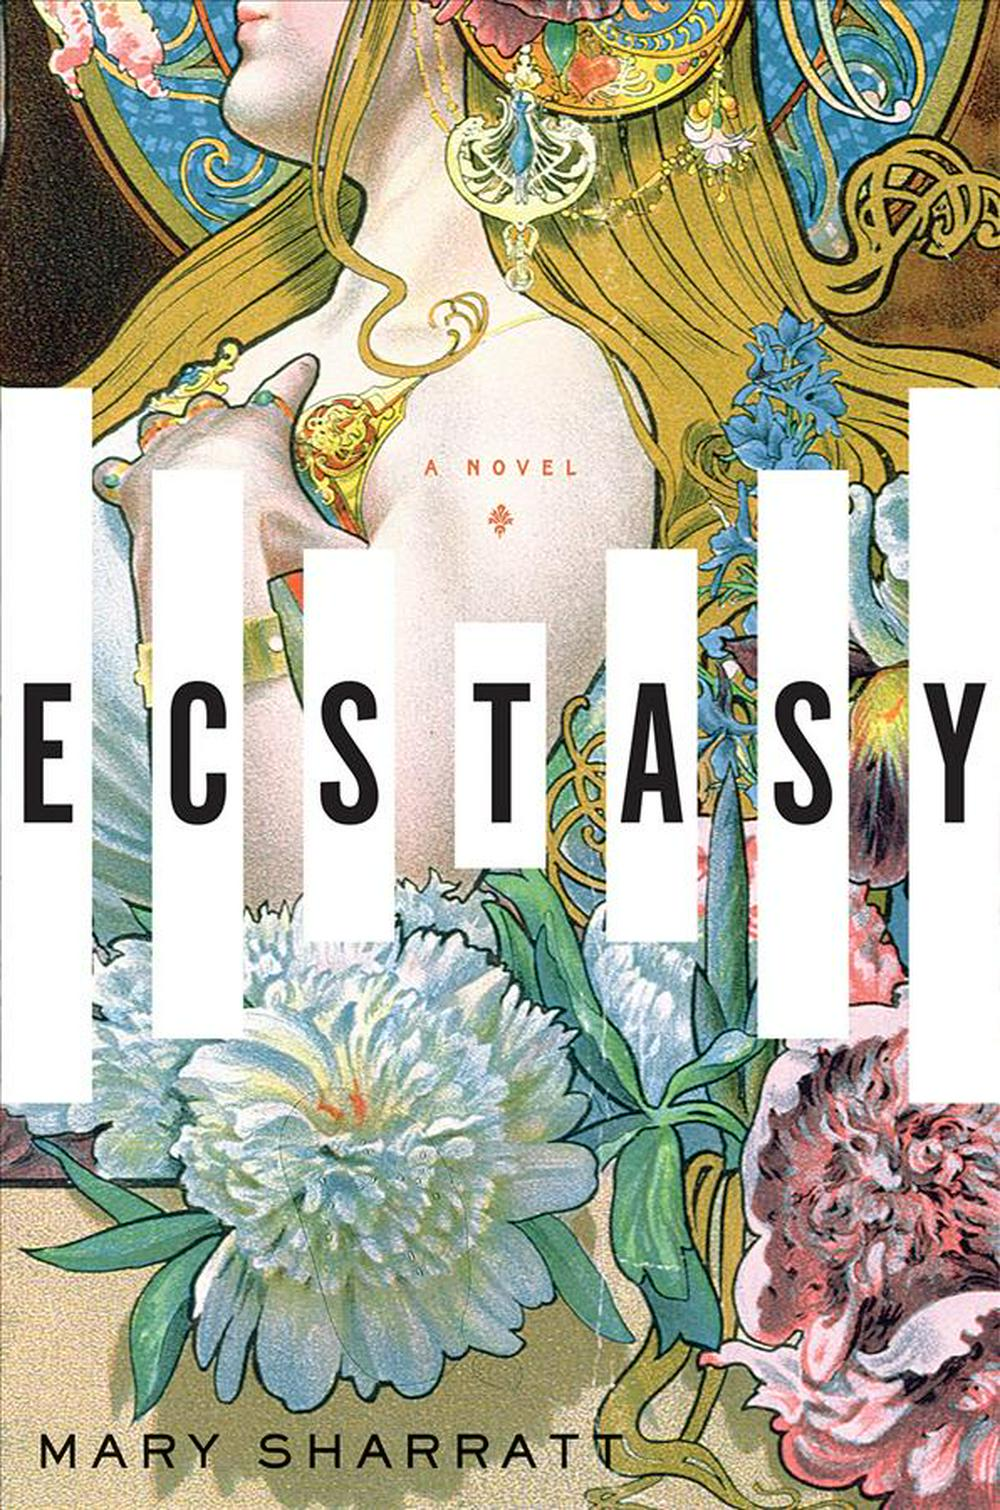 Ecstasy by Mary Sharratt, ISBN: 9780544800892